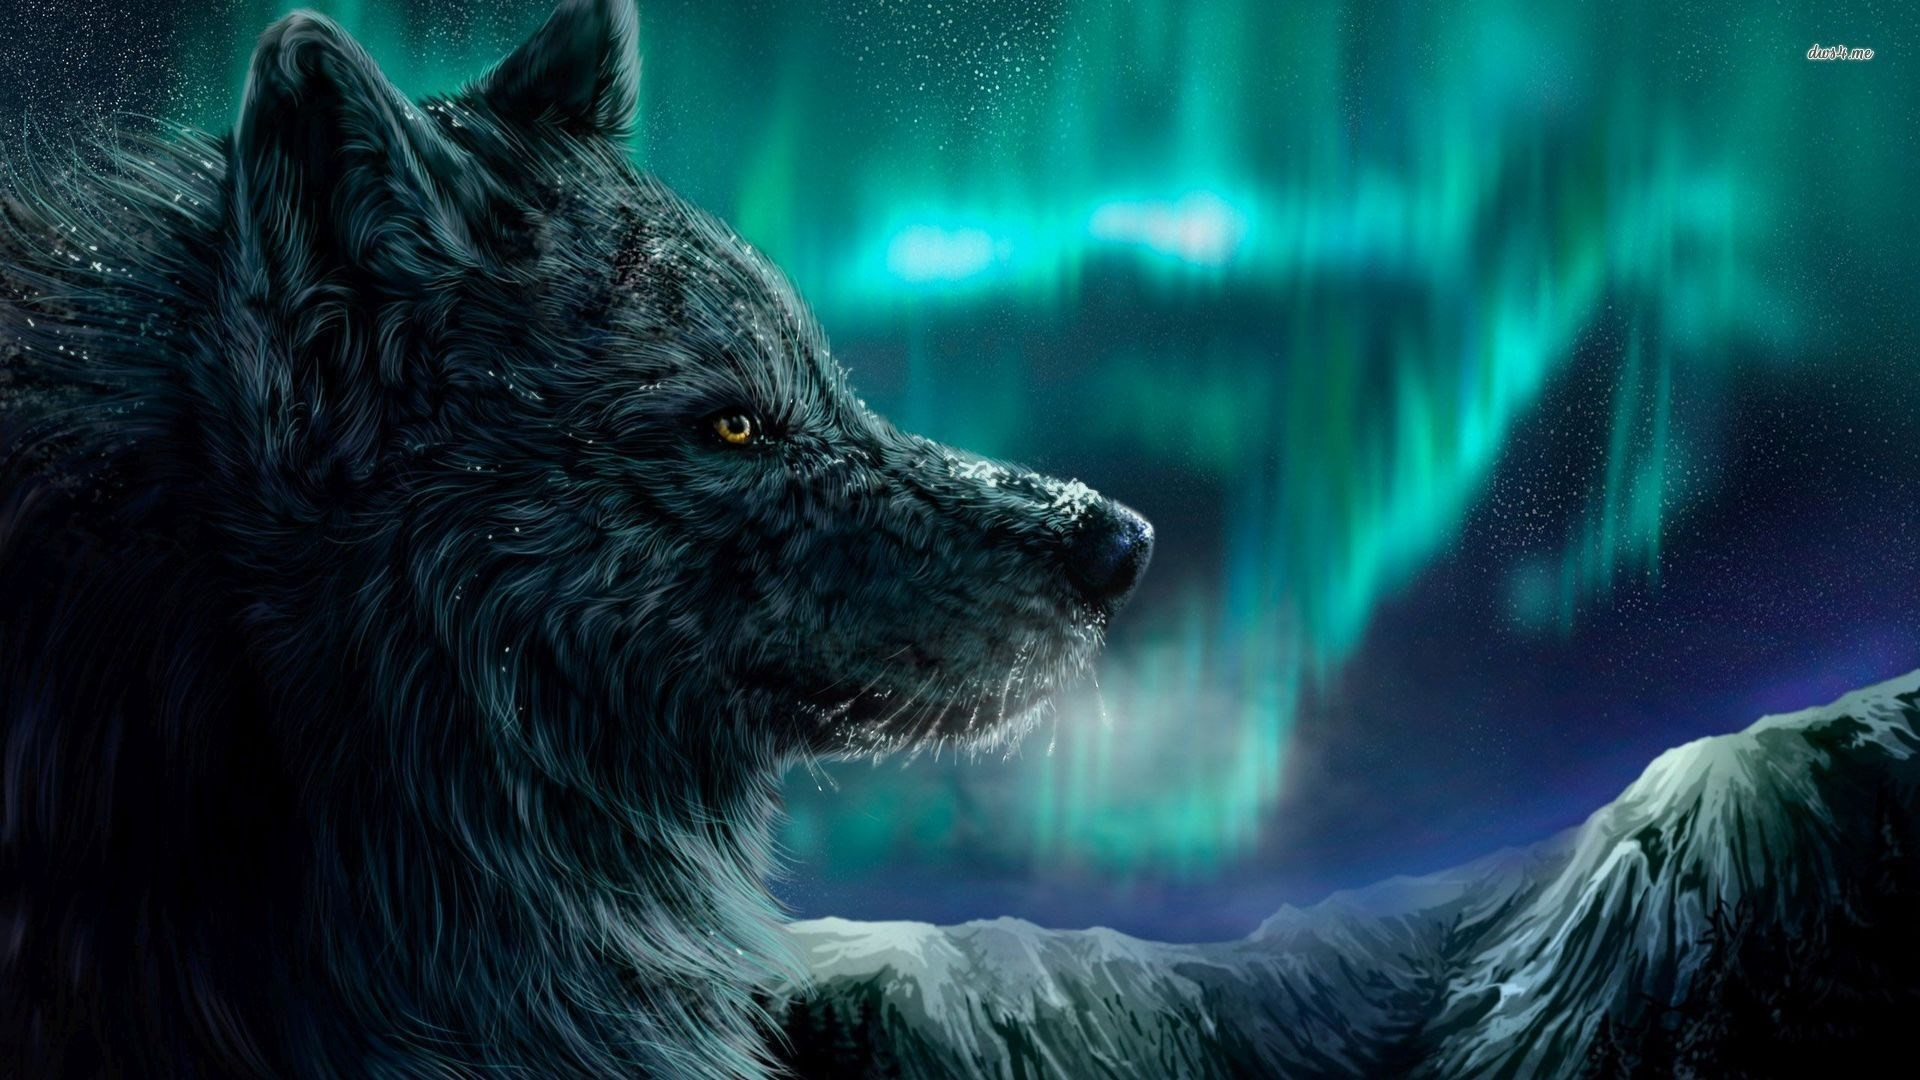 1920x1080 ... WallpaperSafari Wolf Wallpaper #6832268 ...